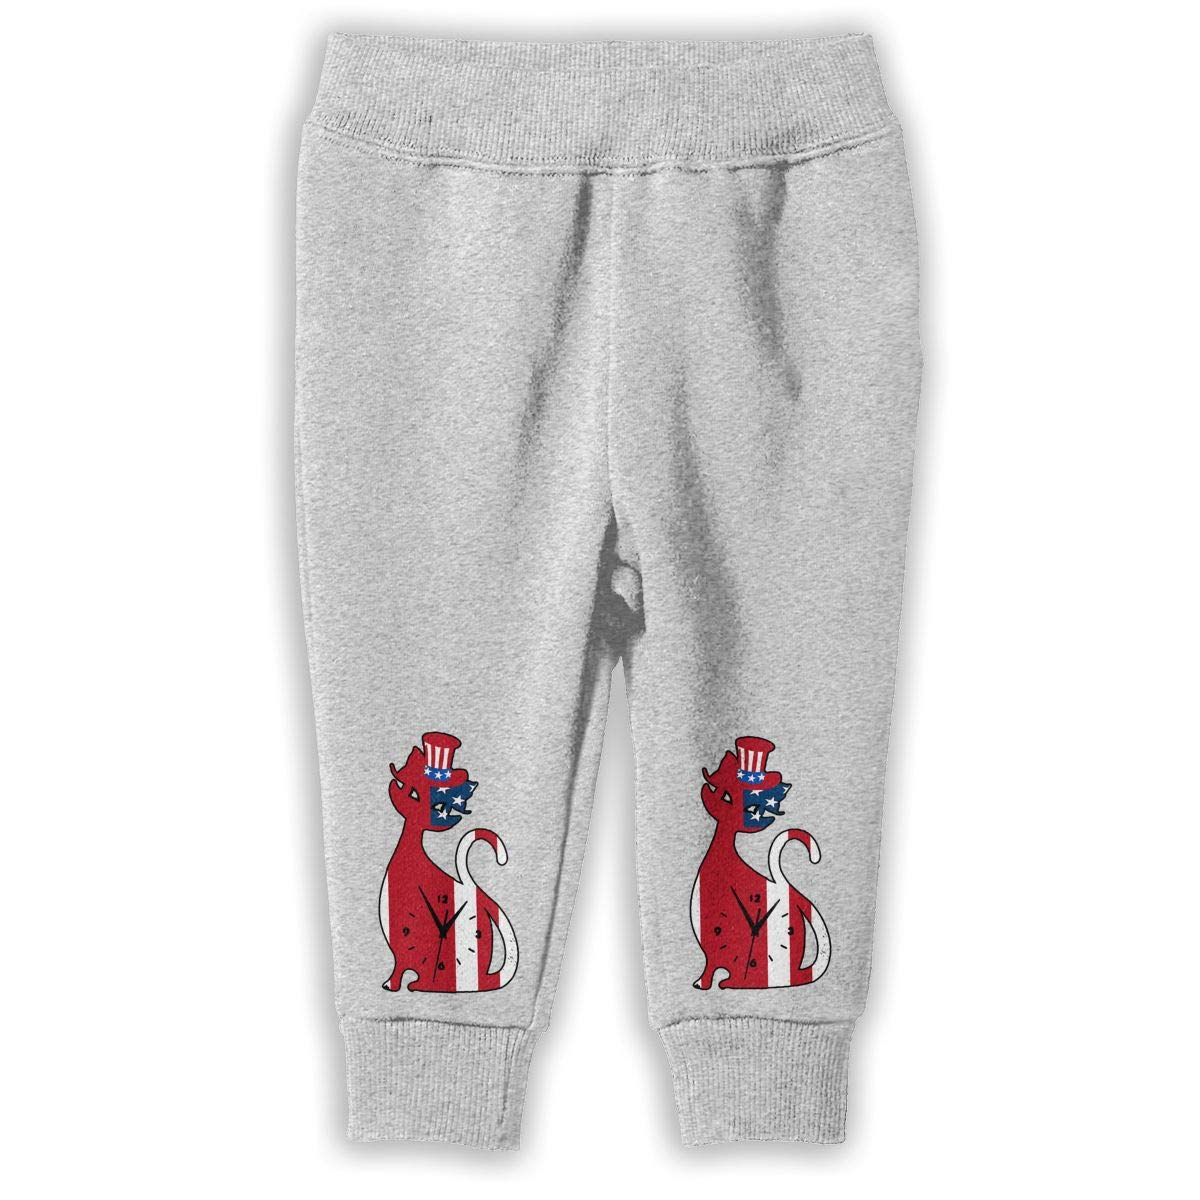 2-6T Cat Kitten Kids Sweatpants Cute Jogger Pants Active Pants Cotton Pants